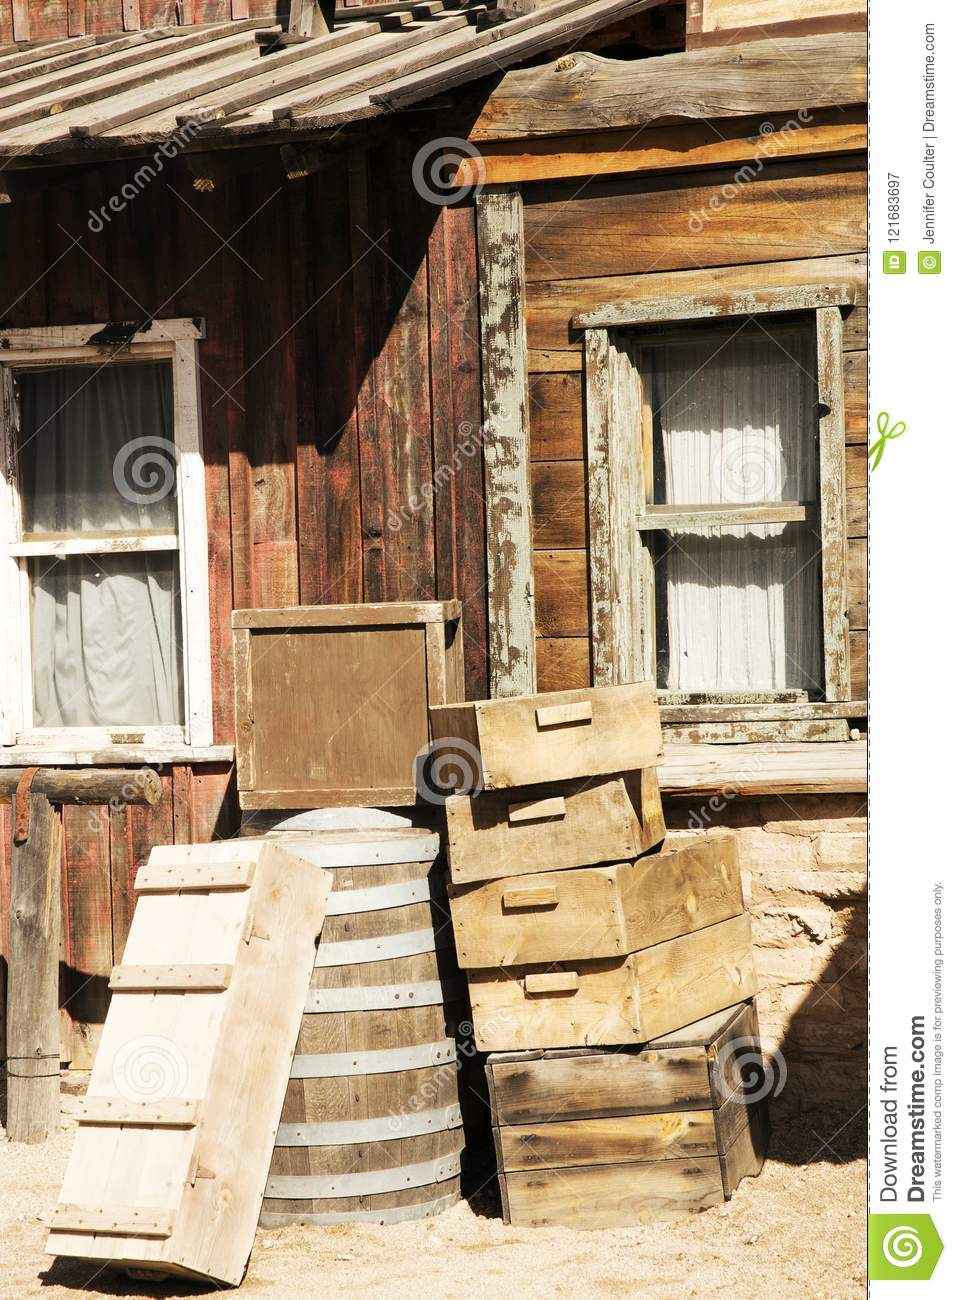 Old Wooden Crates By An Old Weathered Building Stock Image Image